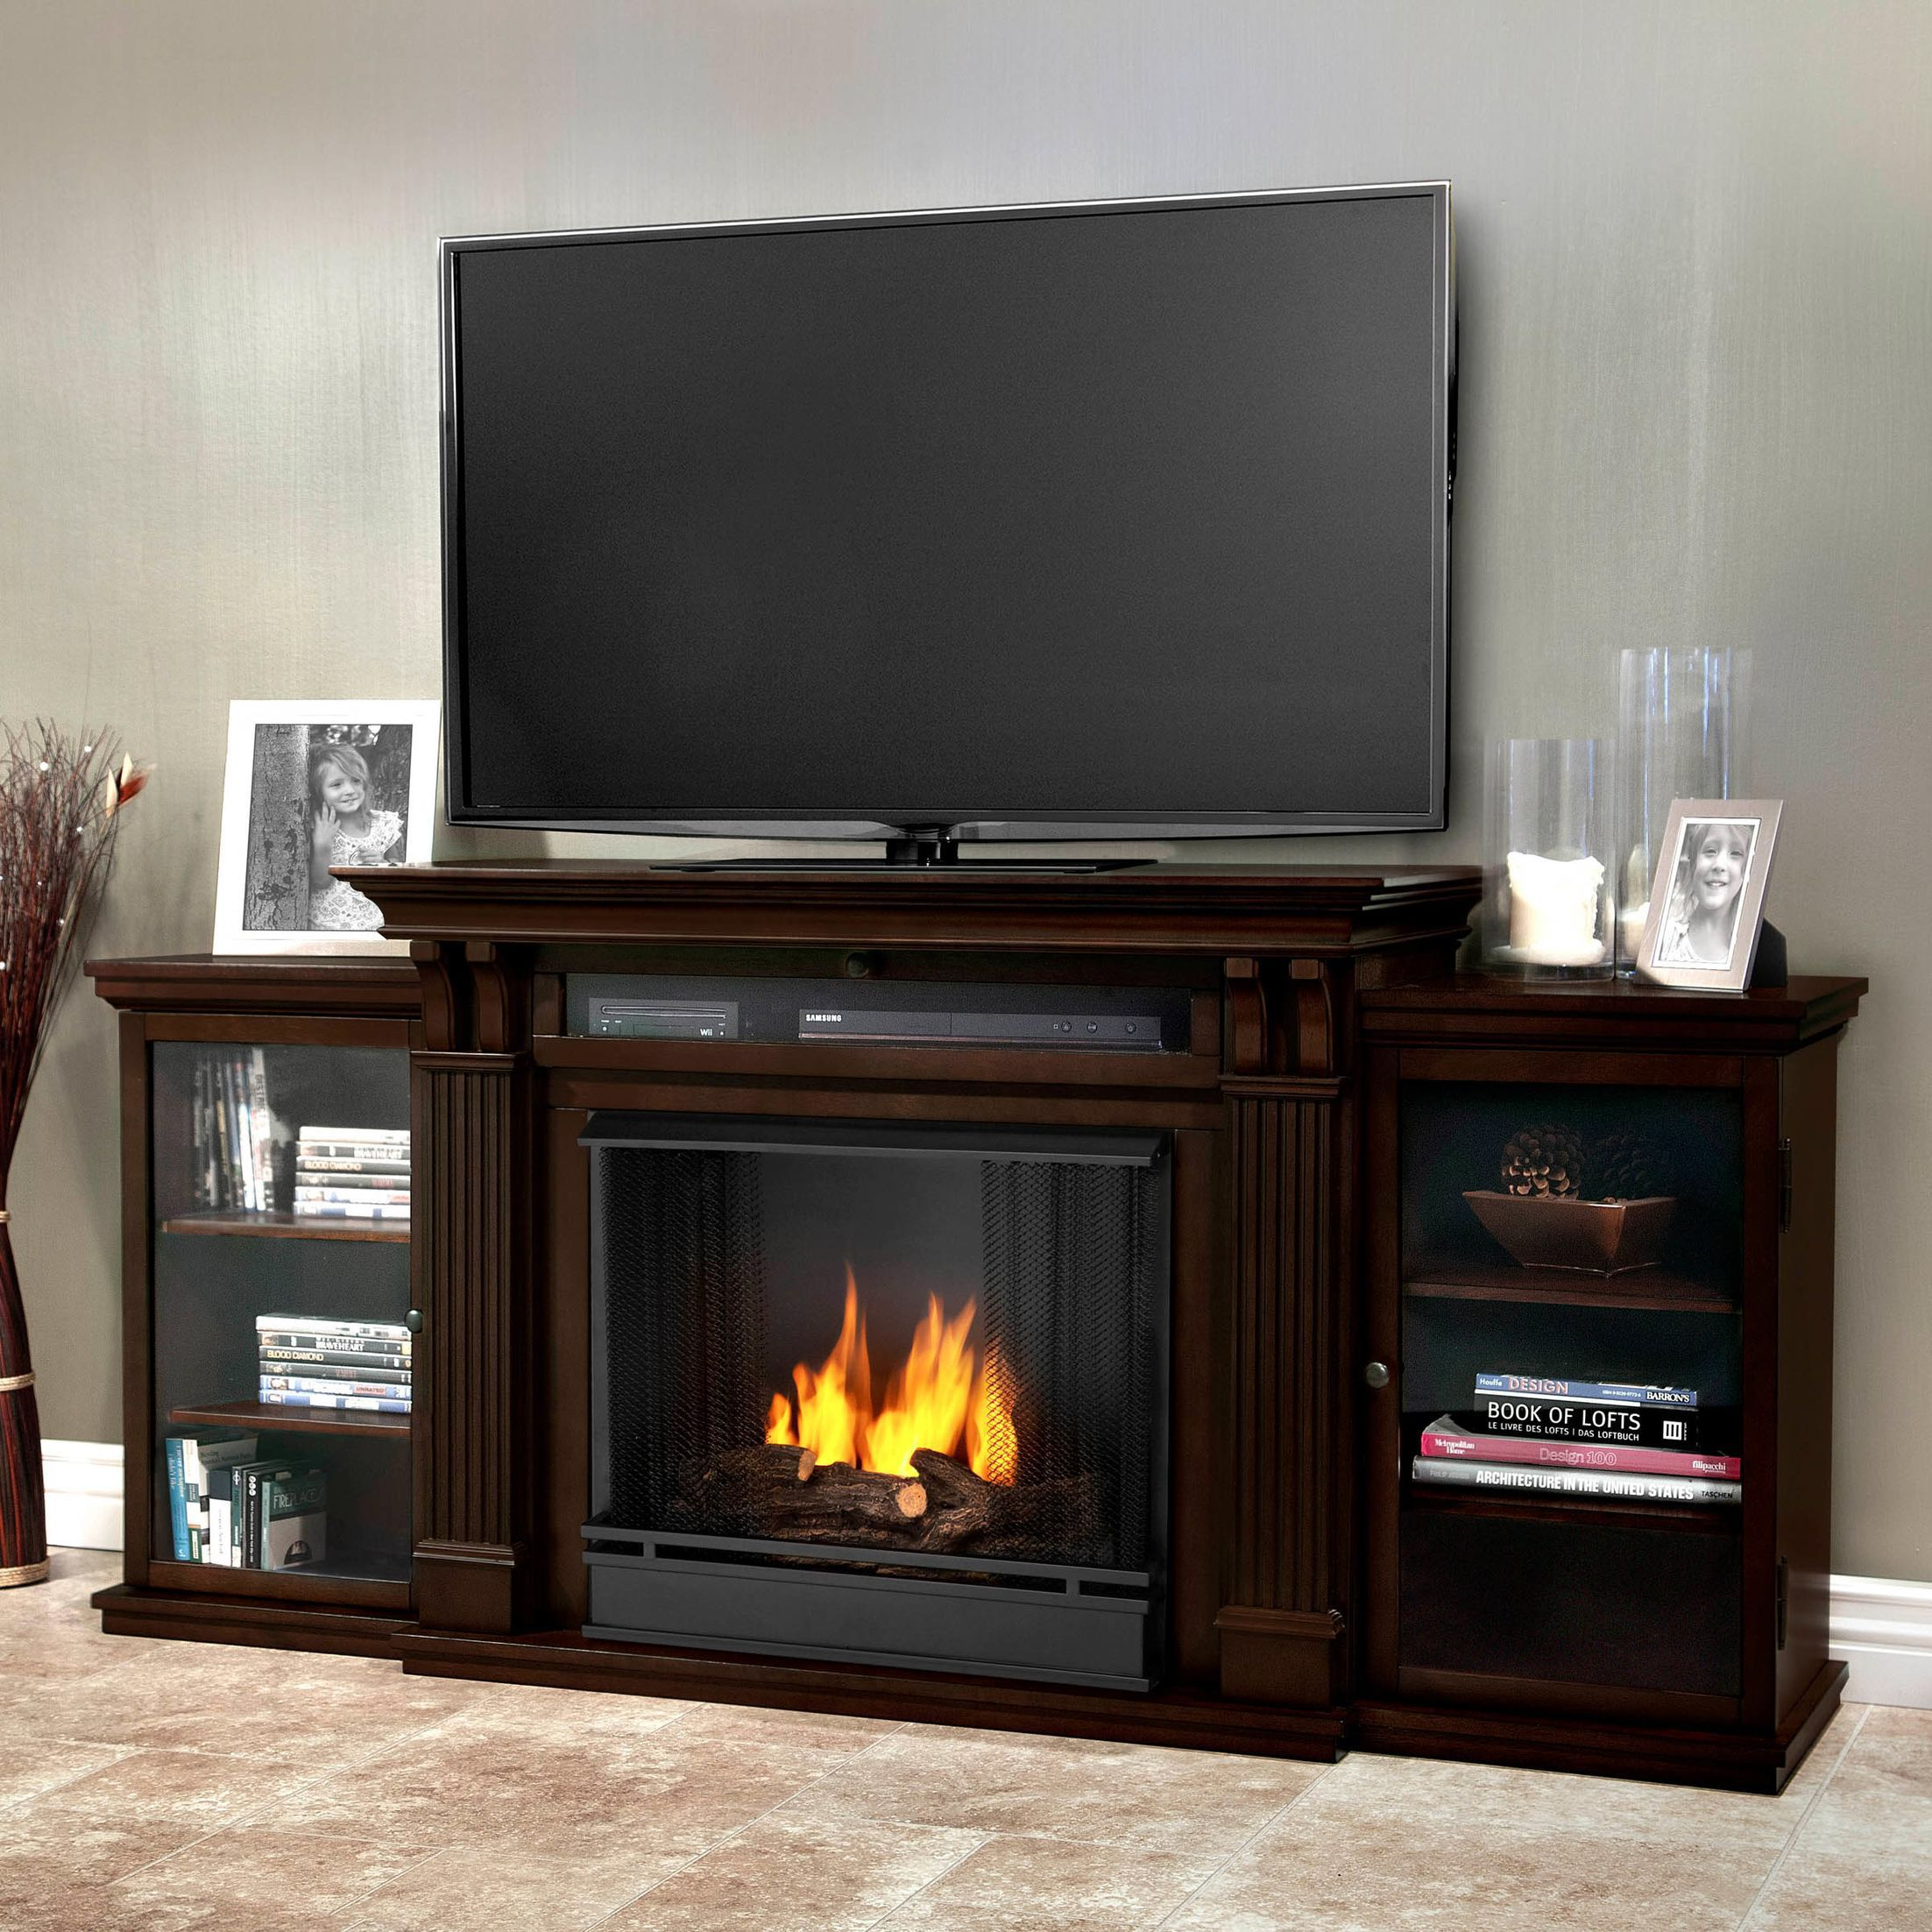 nyc mccmatricschool fireplaces kitchens electric builders installed outdoor products com l fireplace amish